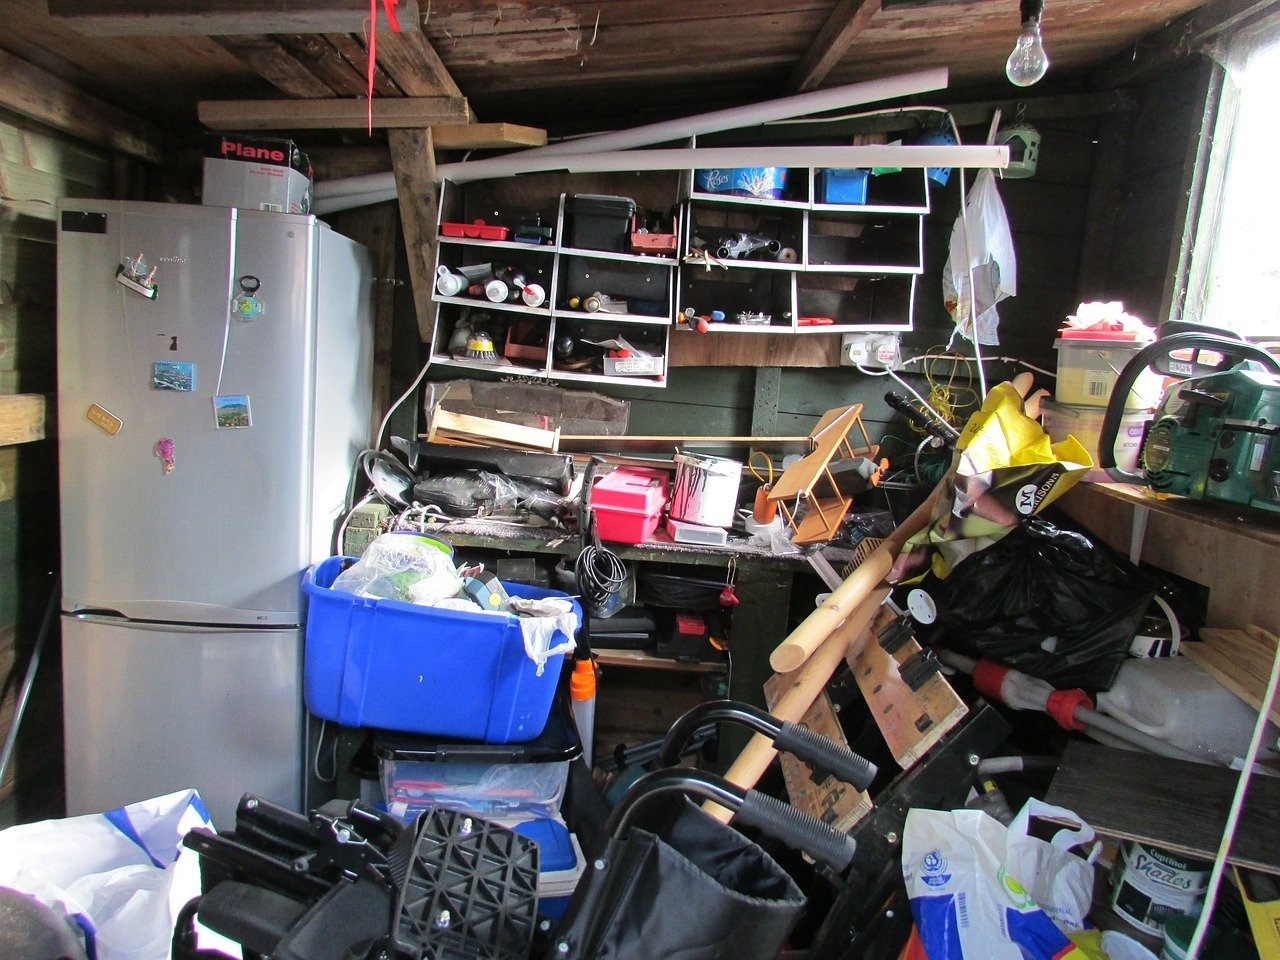 This packed garage is not ready for a move. Do you know how to downsize your belongings?